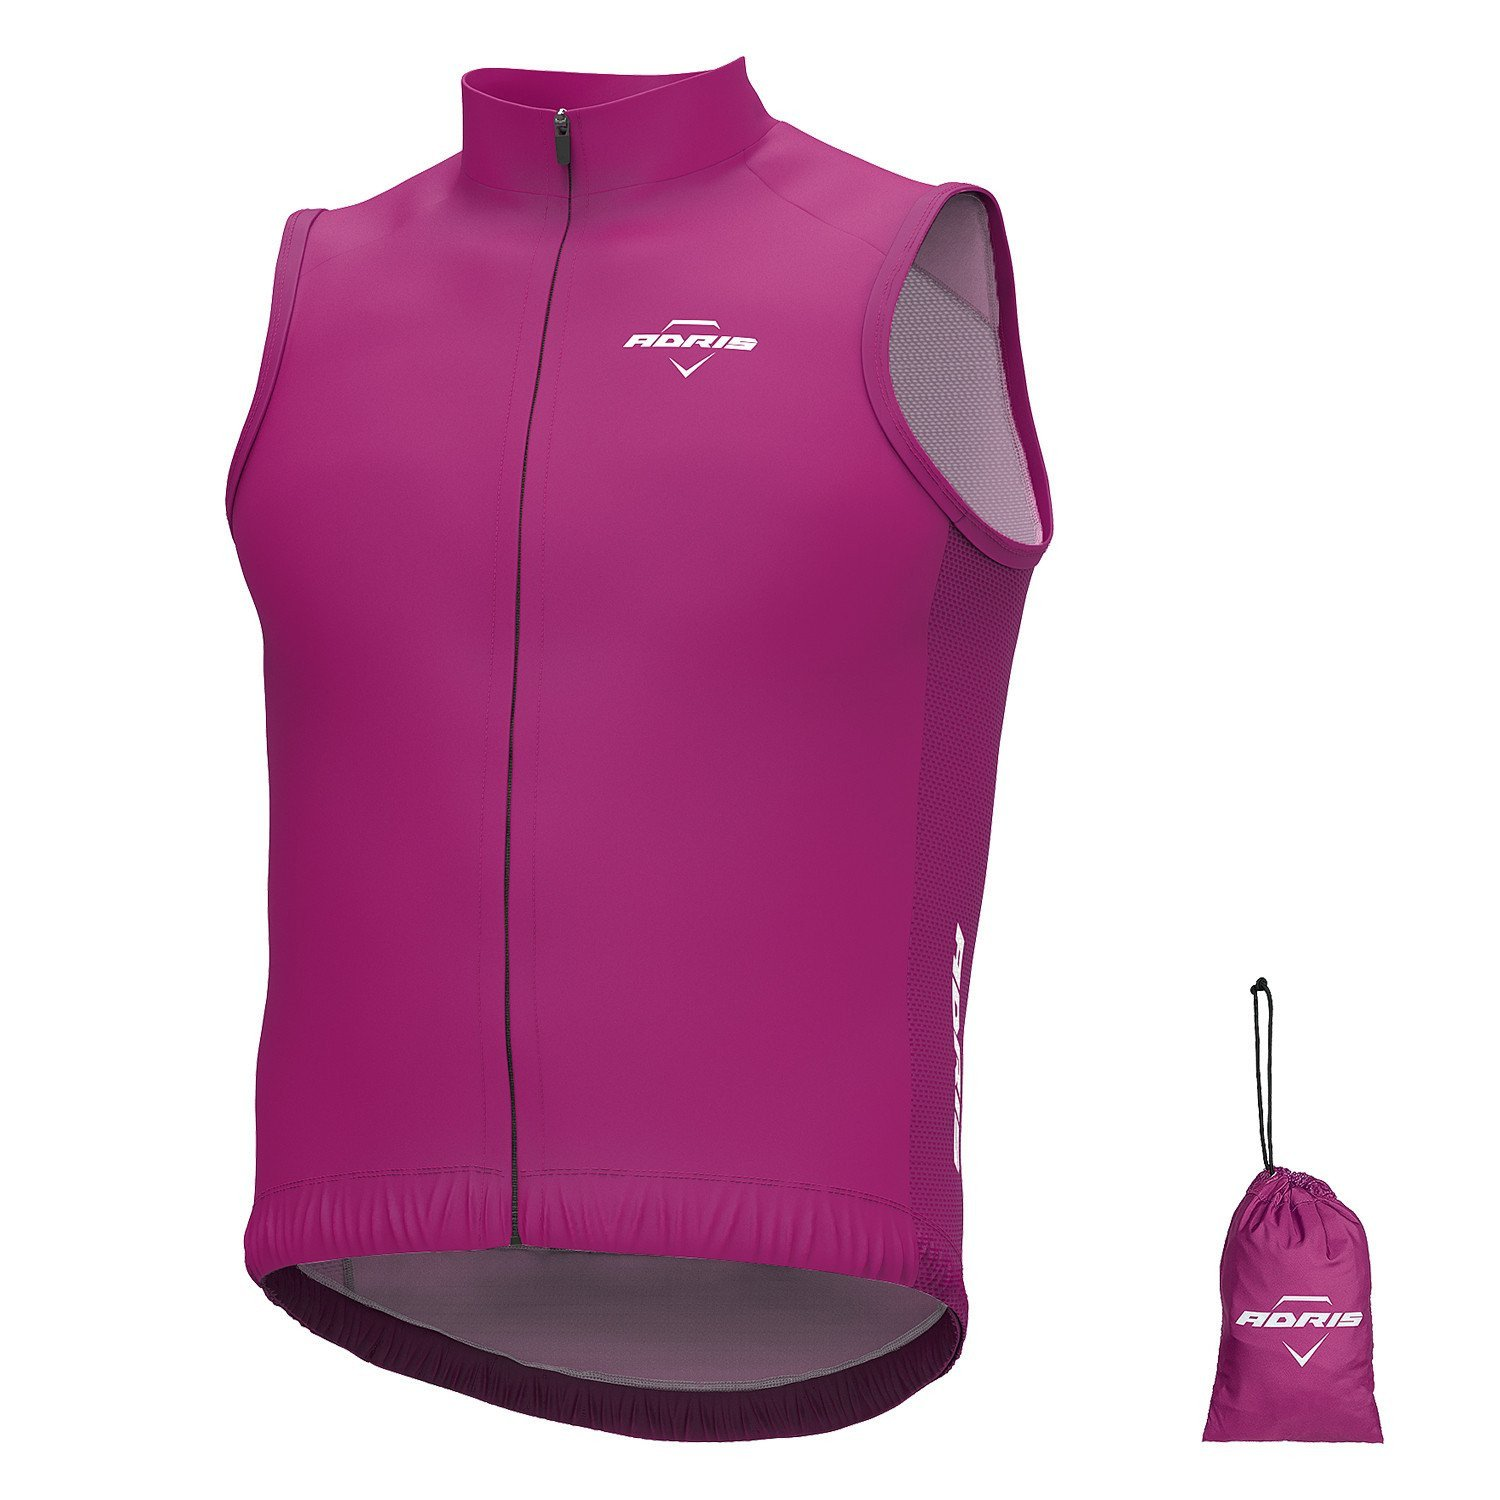 GILET ADRIS LIGHT WIND PURPLE